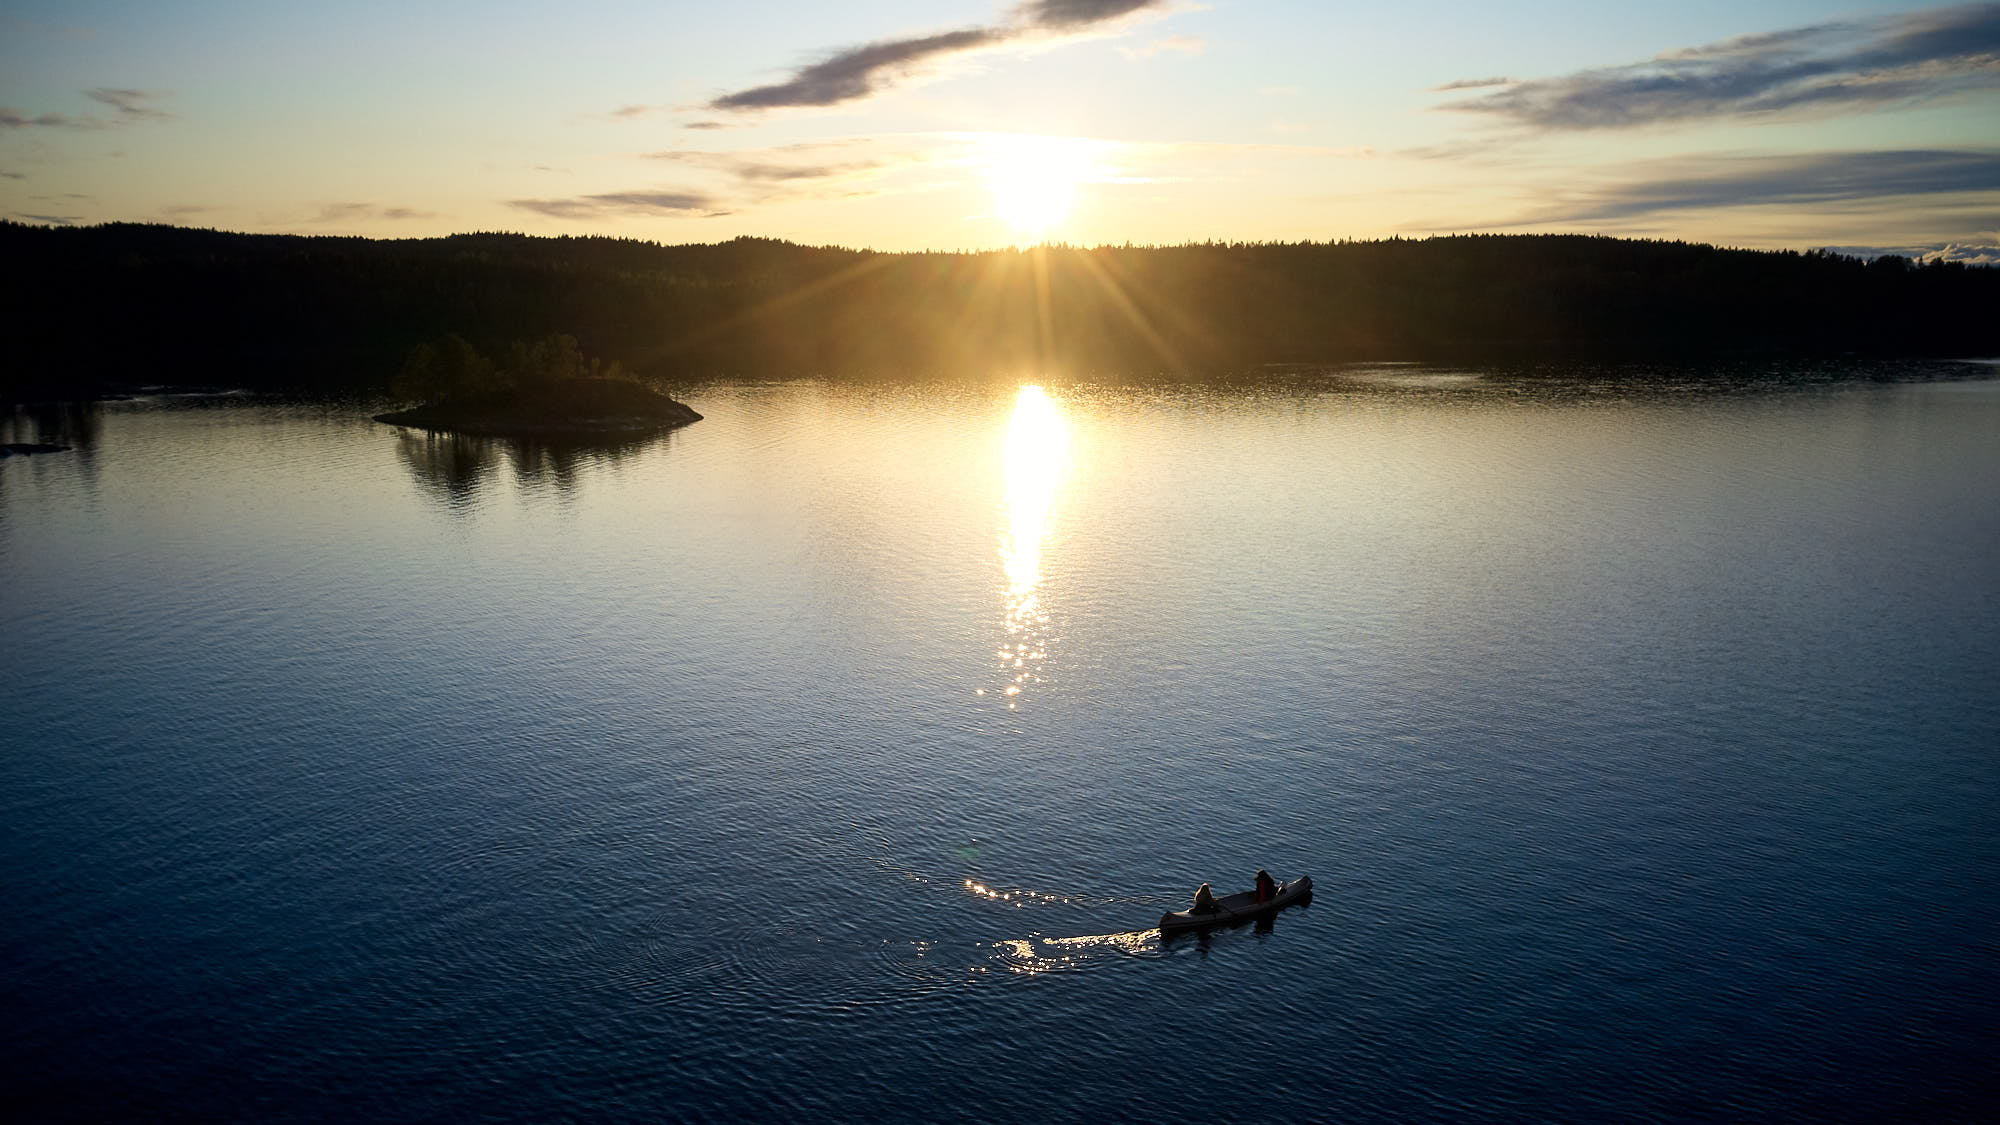 Canoe with two travellers at sunset on a lake in Sweden